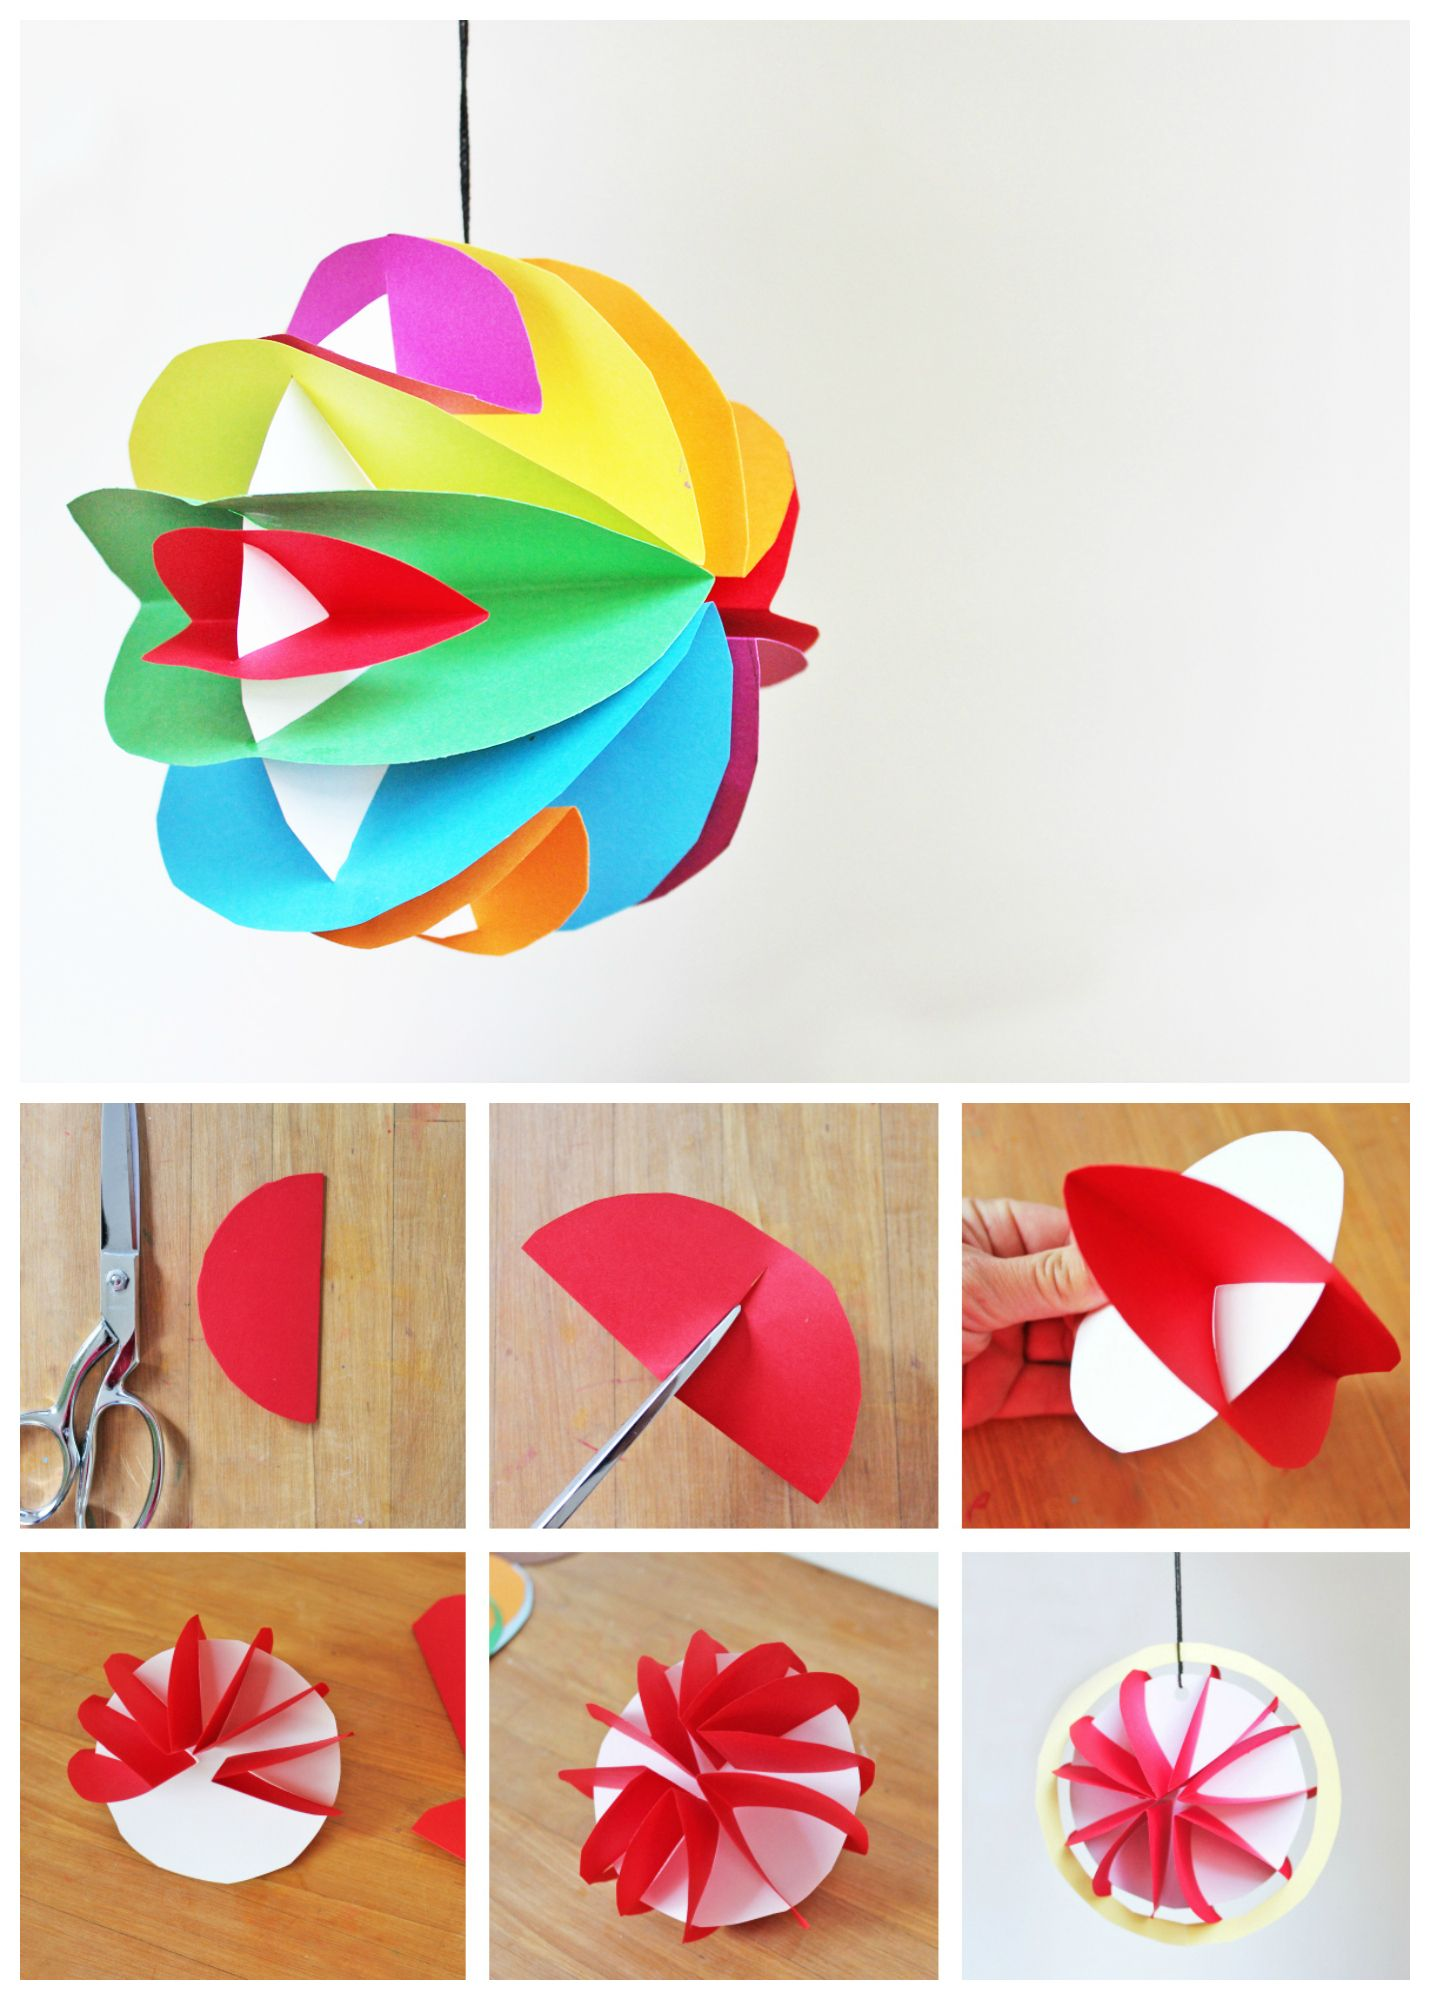 Easy To Make 3d Paper Planets Add A Little Glow In The Dark Paint To Make Them Glow Too Papercrafts Kidsactivit Planet Crafts Paper Crafts Diy Paper Crafts